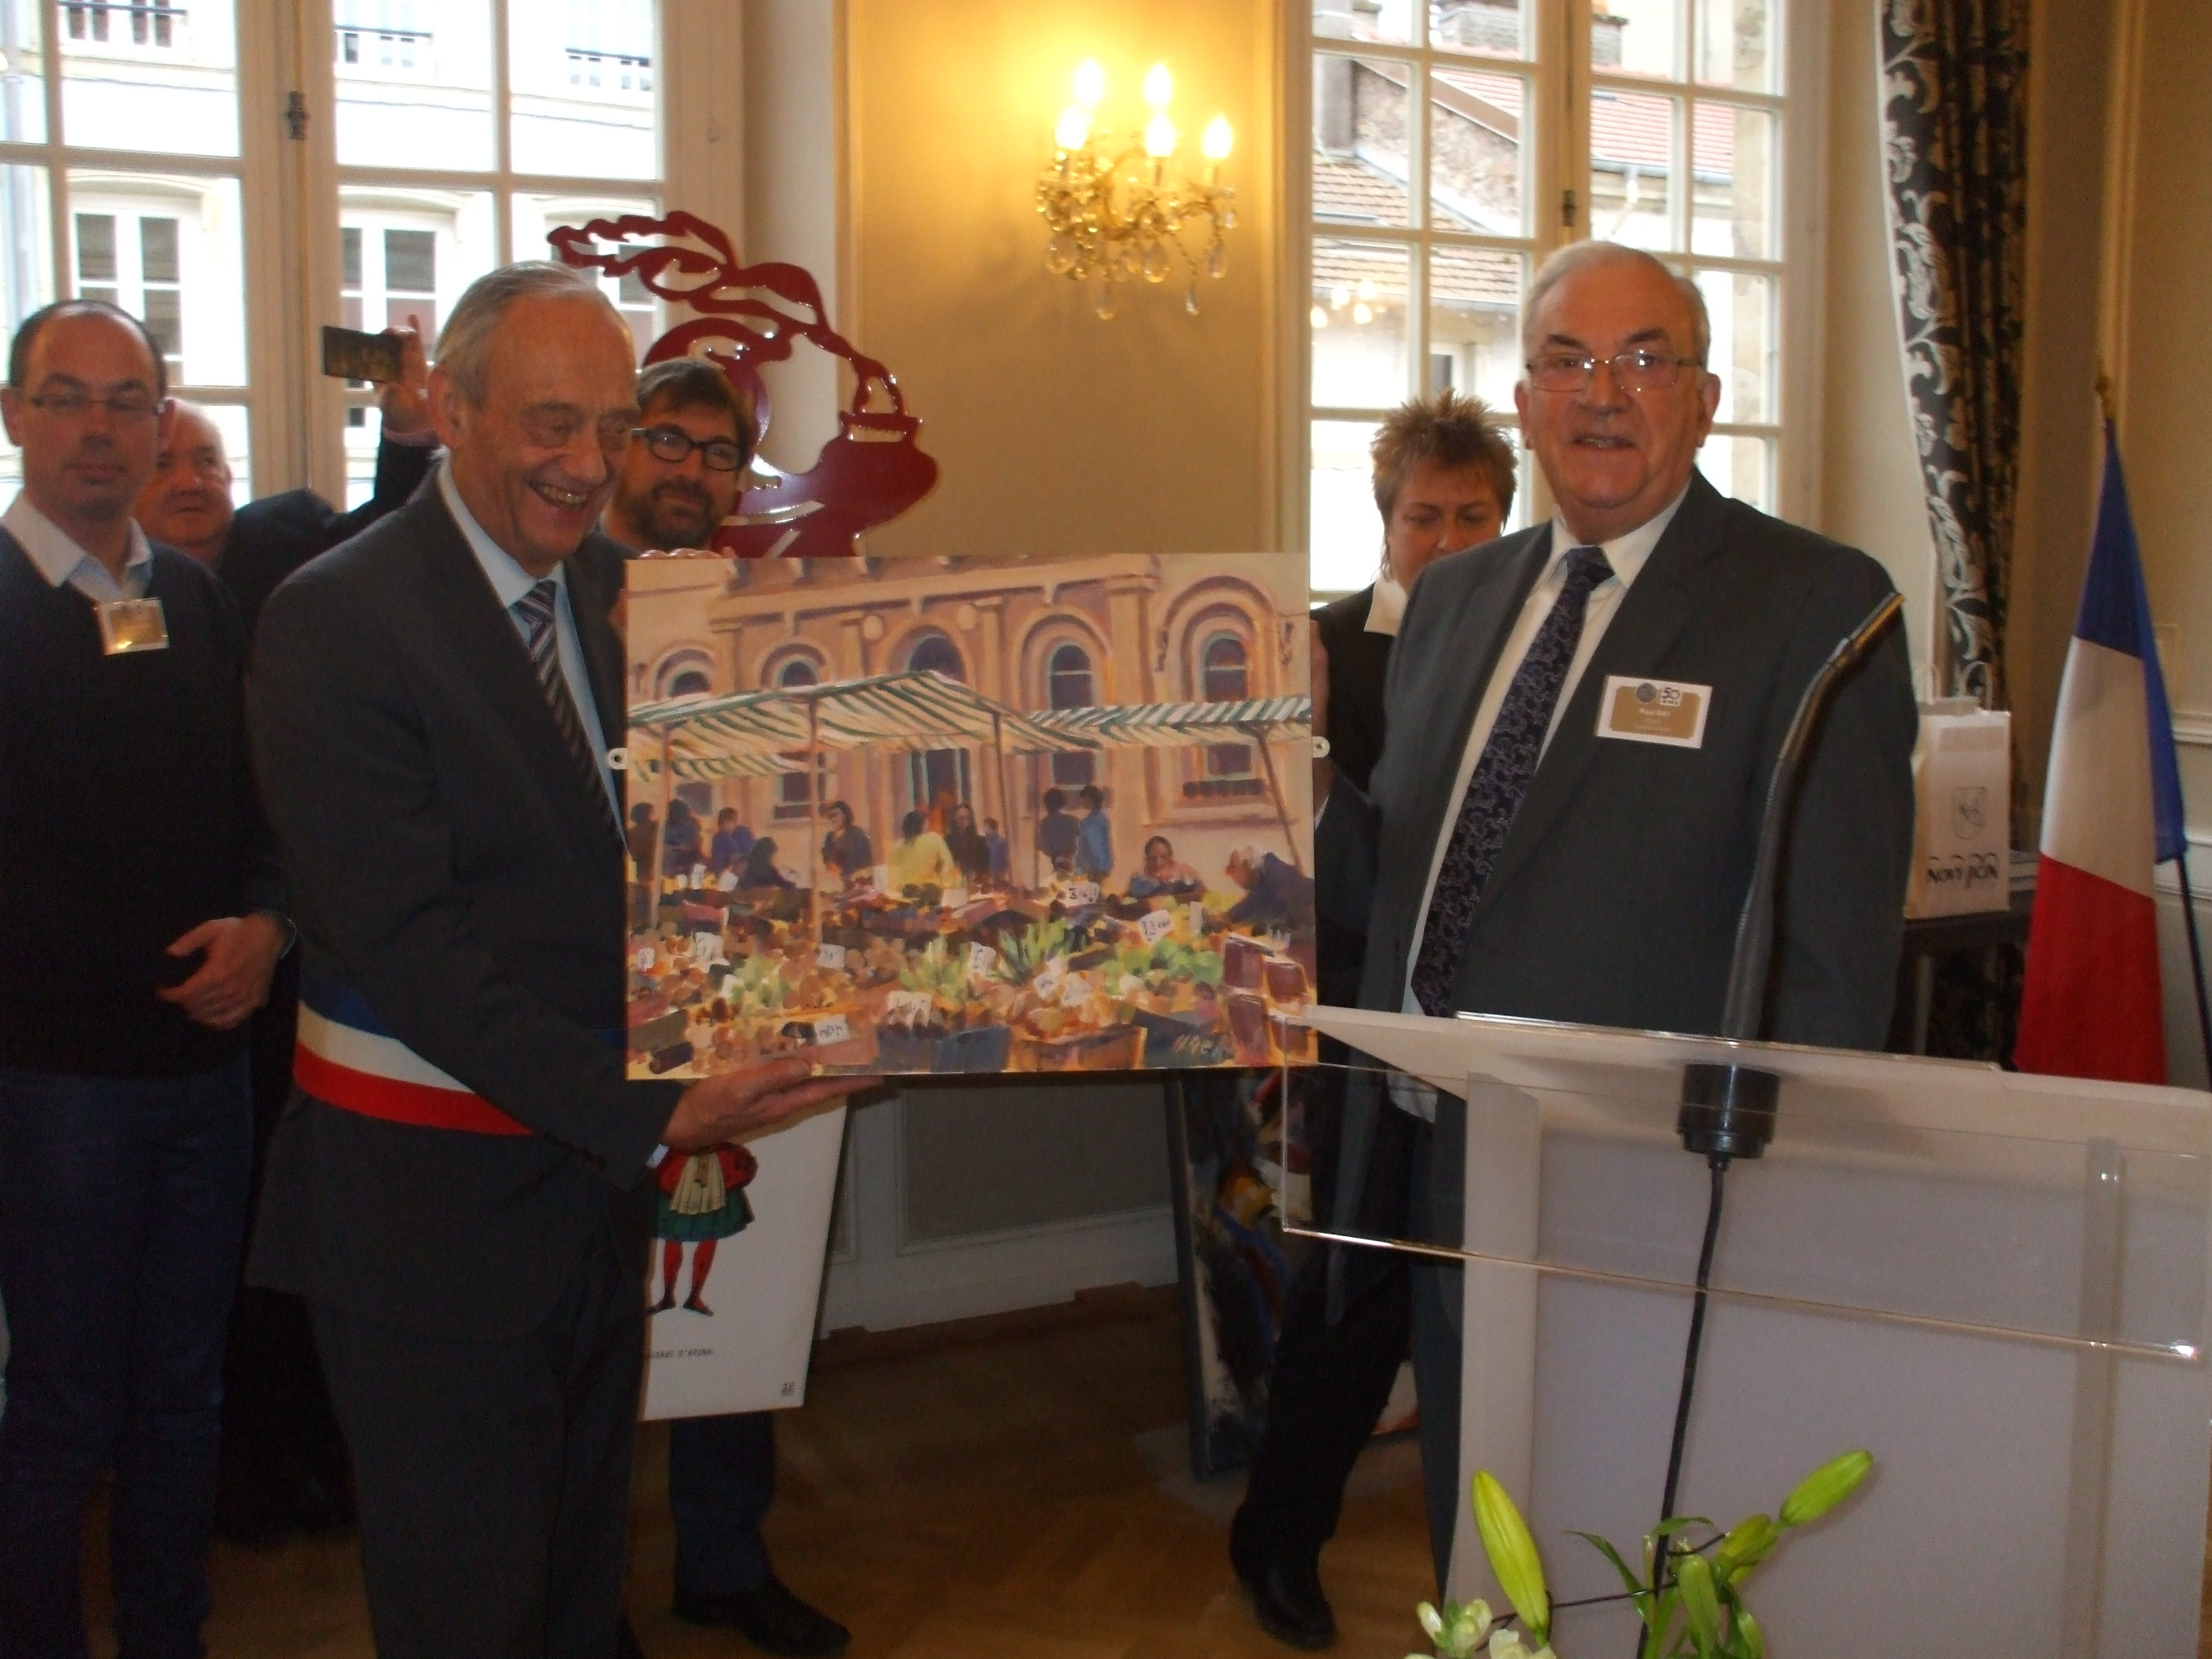 Mayor of Loughborough and the President of Epinal